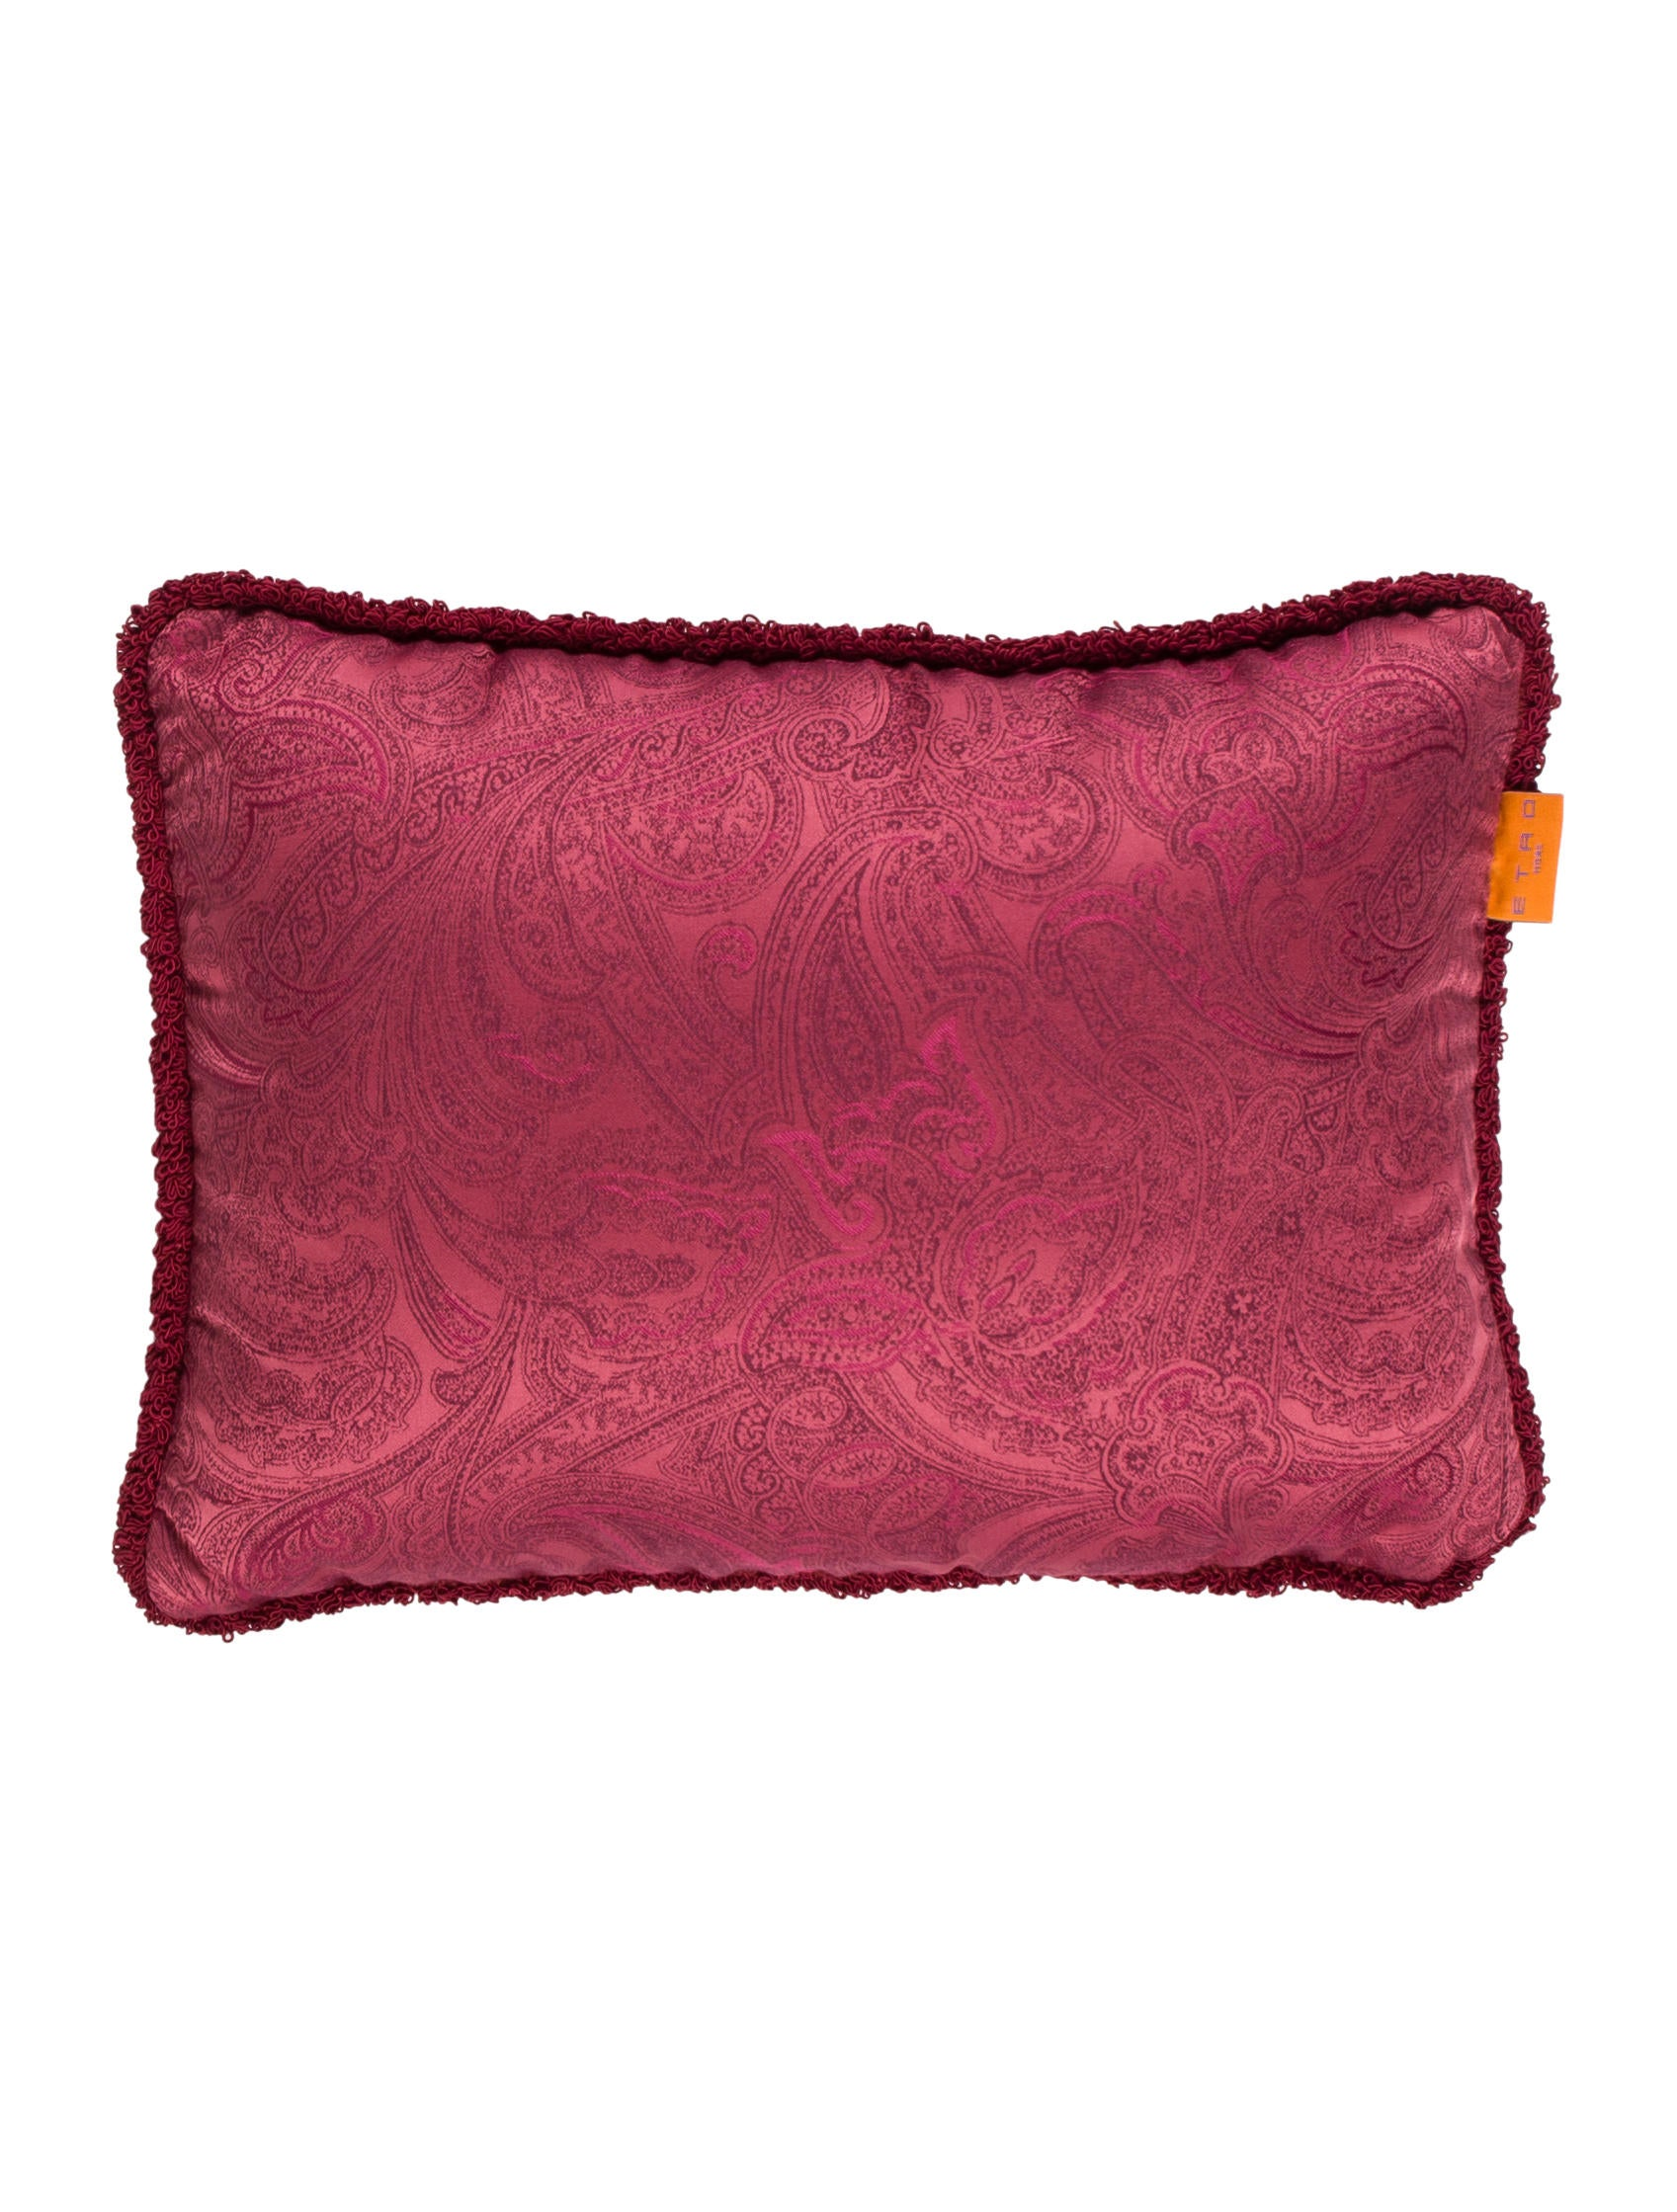 Jacquard Throw Pillows : Etro Home Paisley Jacquard Throw Pillow w/ Tags - Bedding And Bath - ETH20139 The RealReal